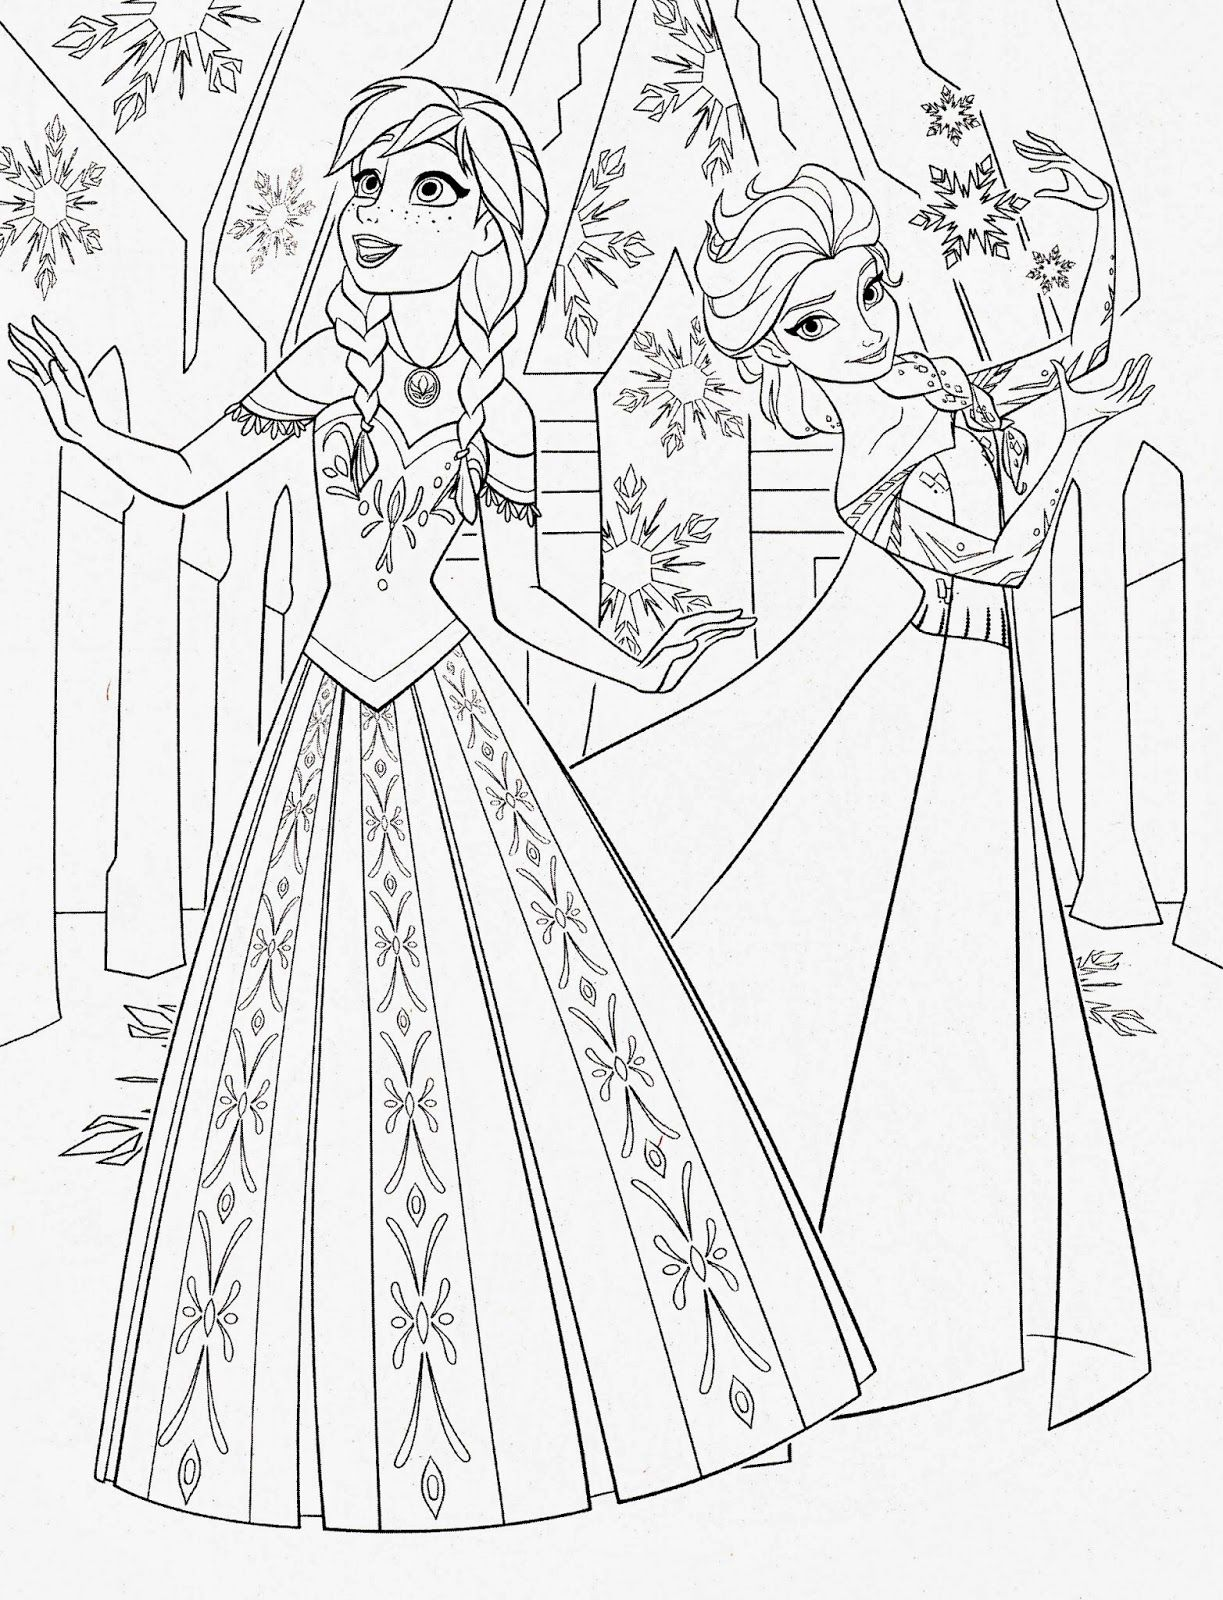 Frozen+Coloring+Pages | Fun "|1223|1600|?|8787c591209754e18678ede7b2fae5f3|False|UNLIKELY|0.3218672573566437